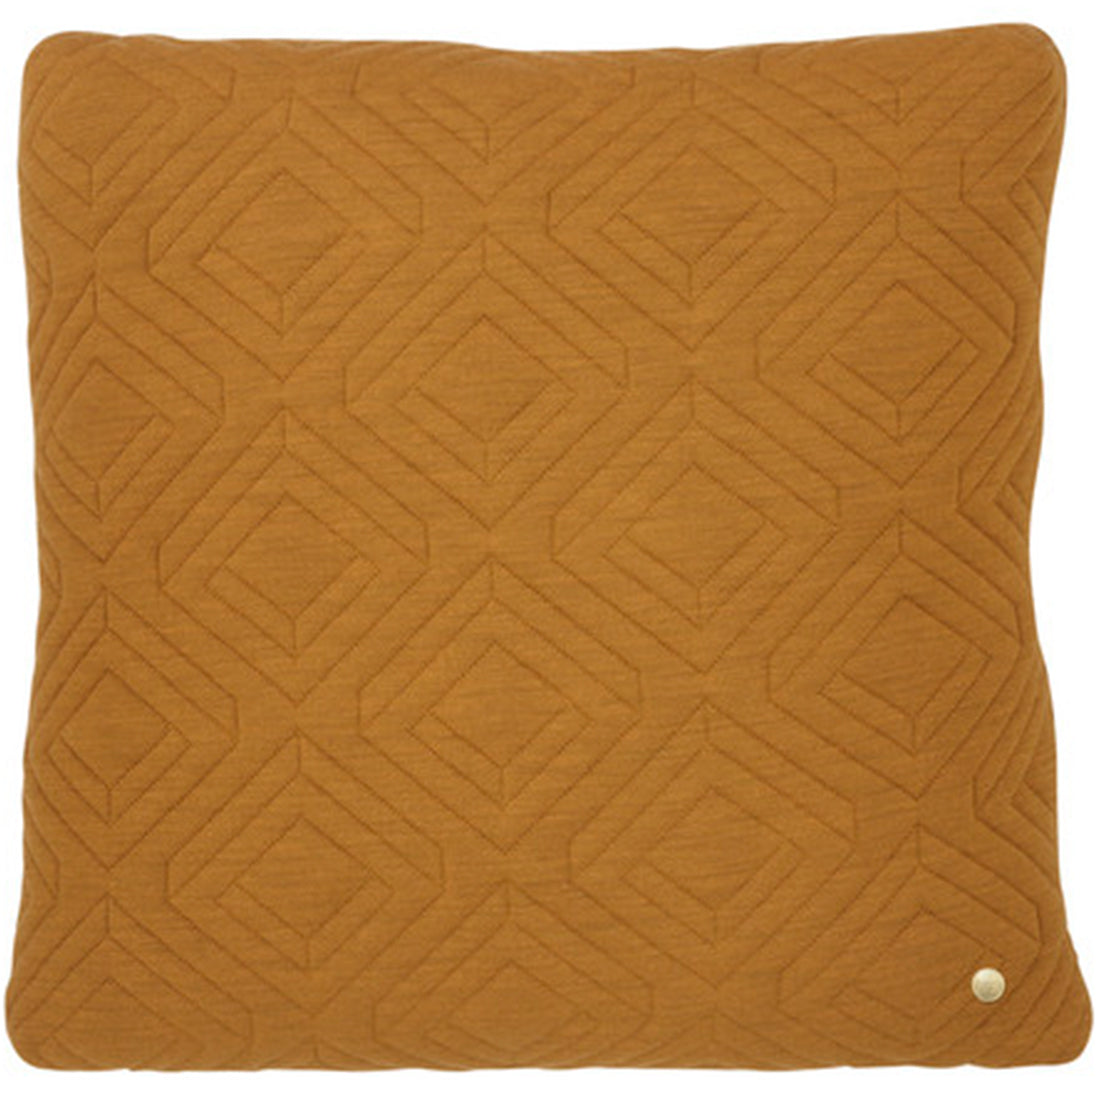 Quilted Cushion | By Ferm LIving